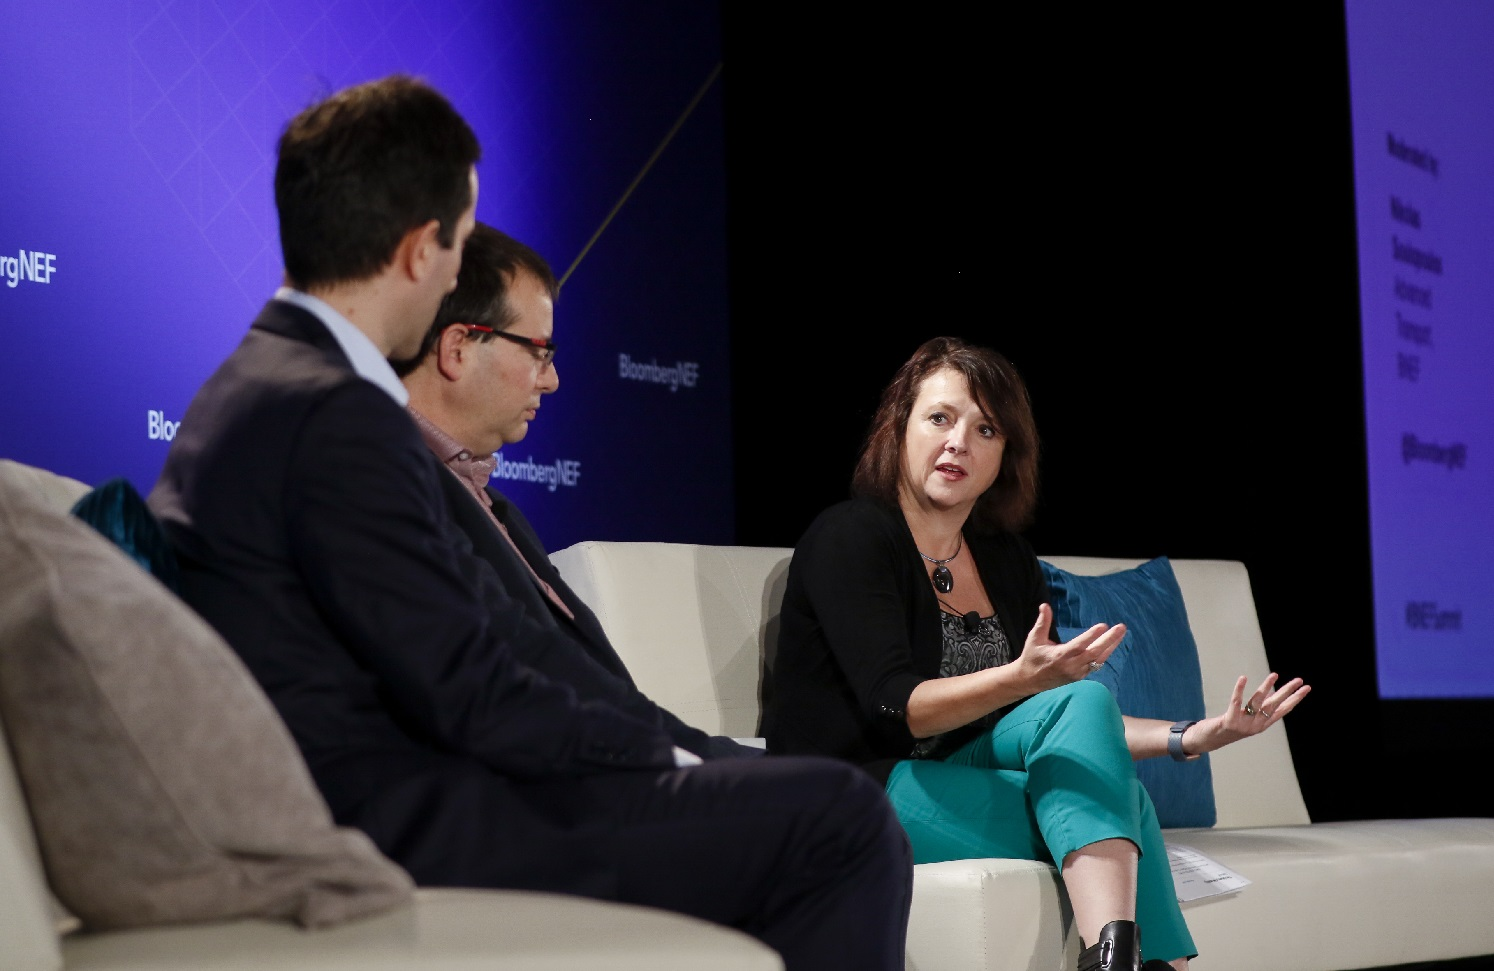 Photo of Julie Furber at BNEF conference